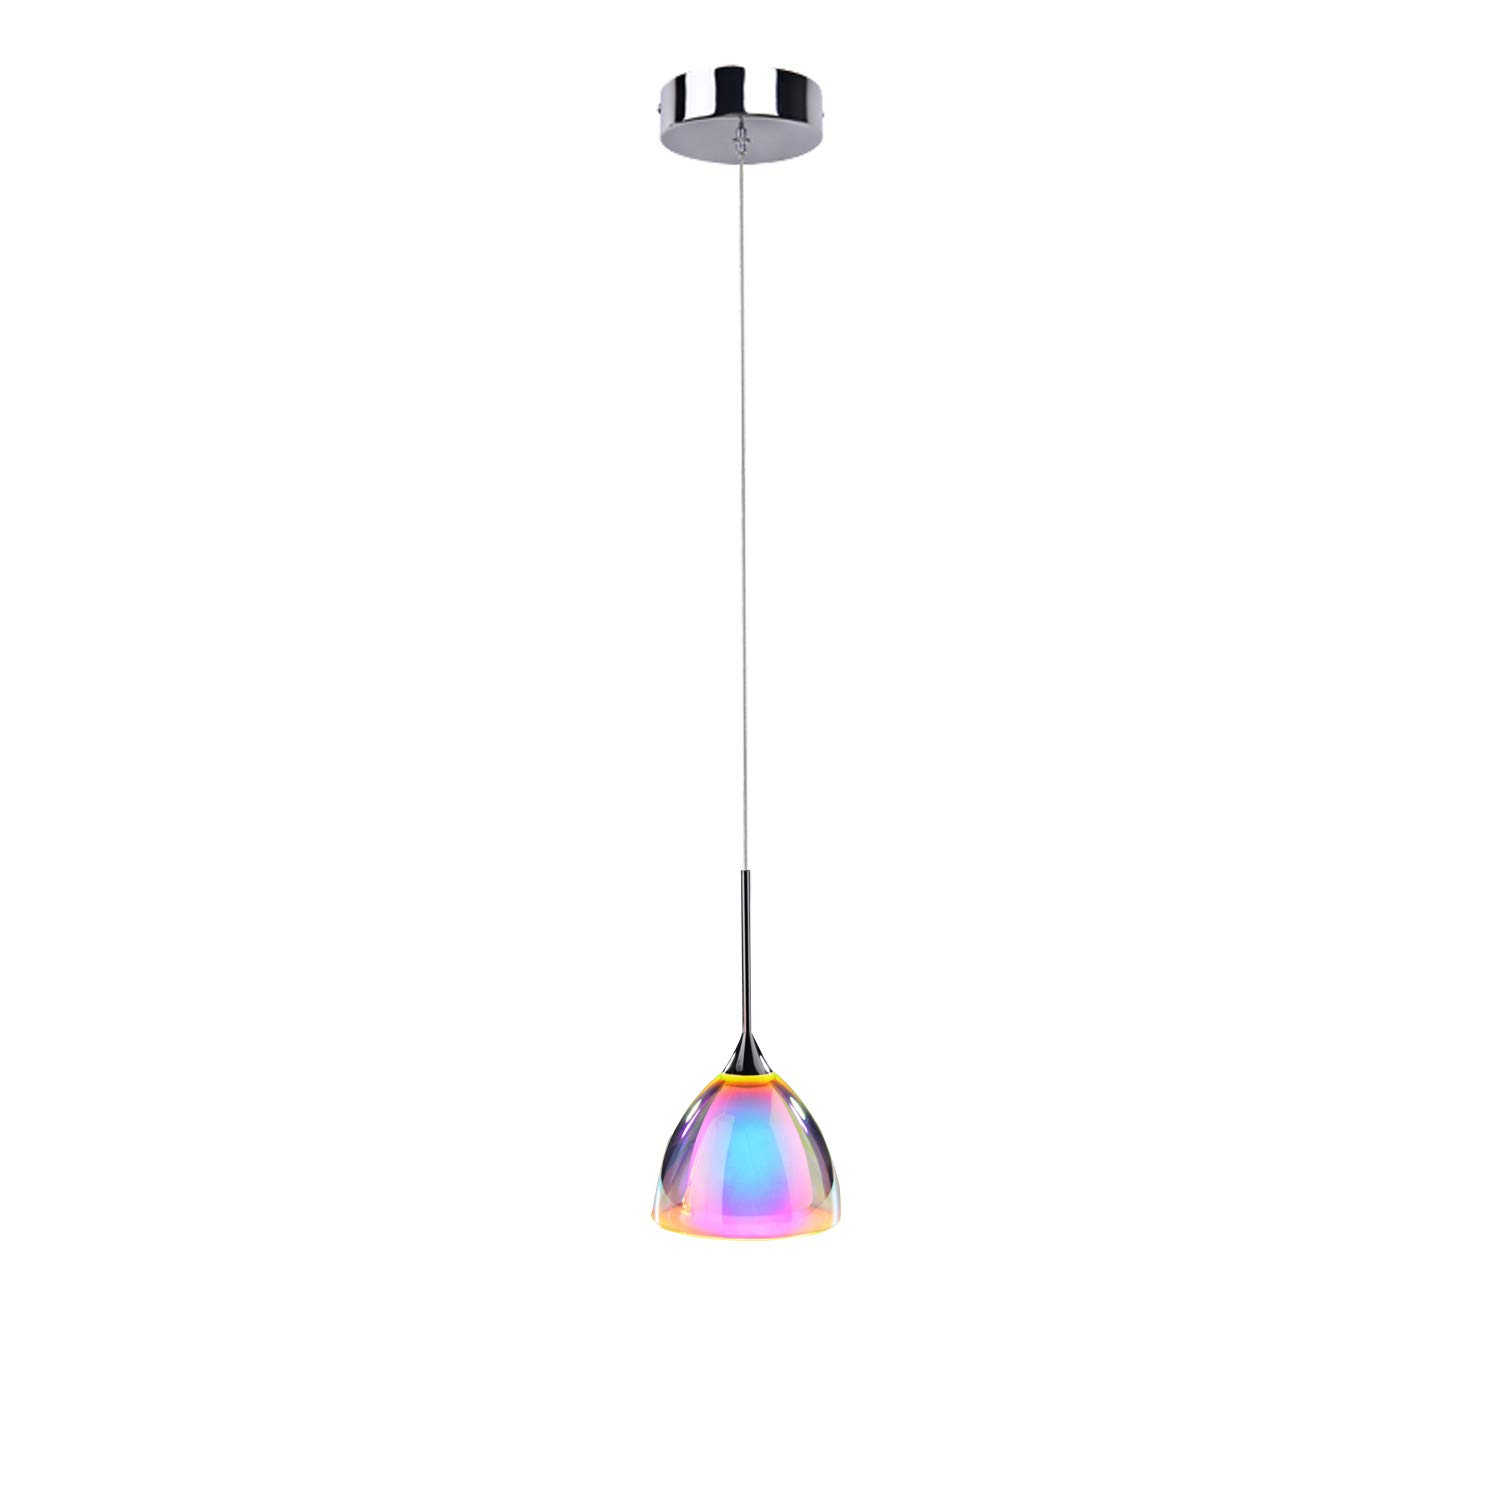 OBSESS 5W COB LED Mini Pendant Light with Color Plating Glass Shade and Aluminium Trim,Polished Chrome(Kitchen/Bar Pendant Light )